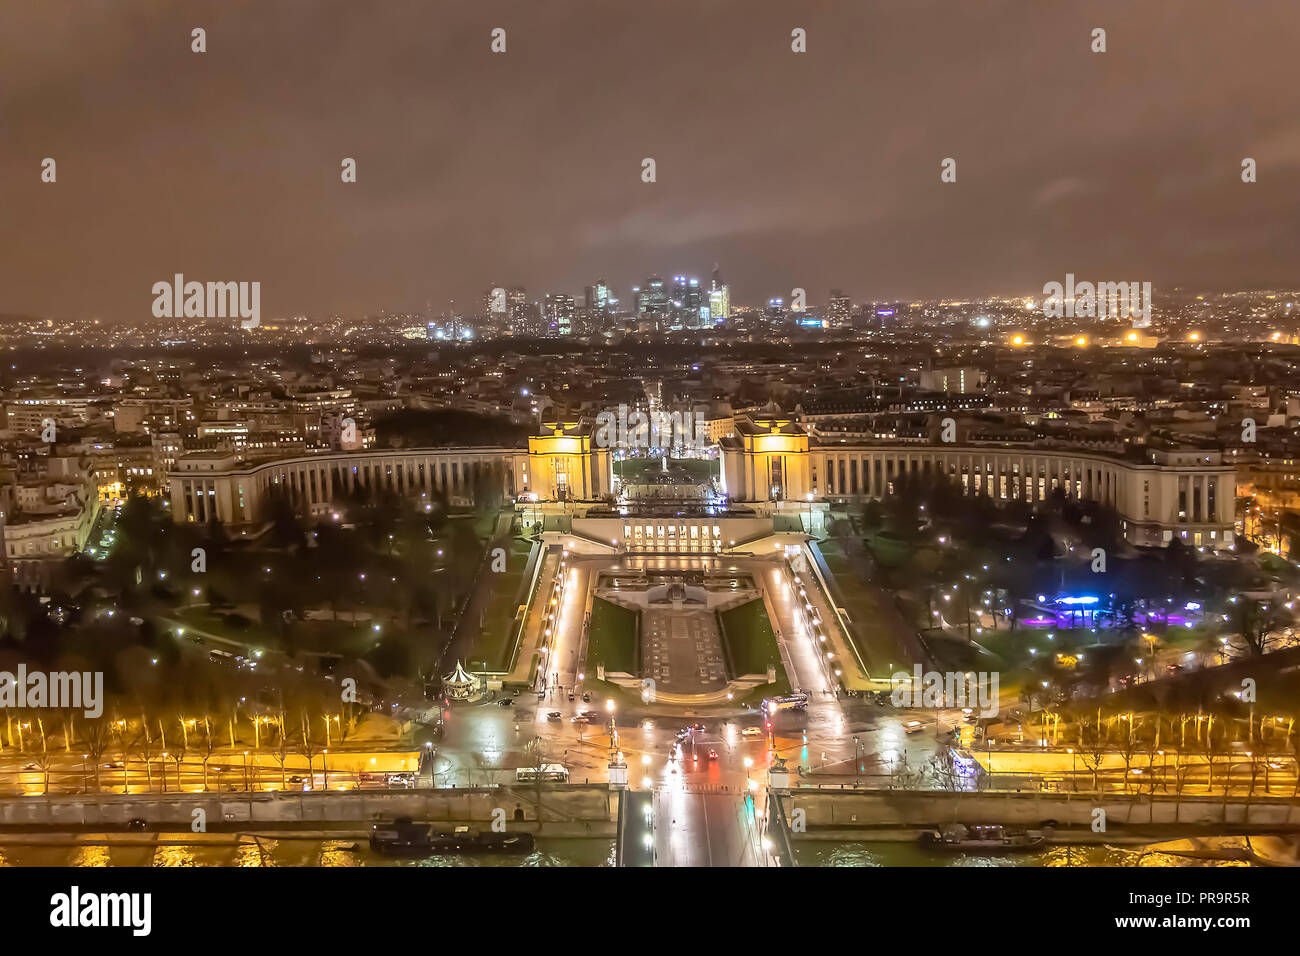 Aerial view of Trocadero at cloudy and rainy night - Stock Image